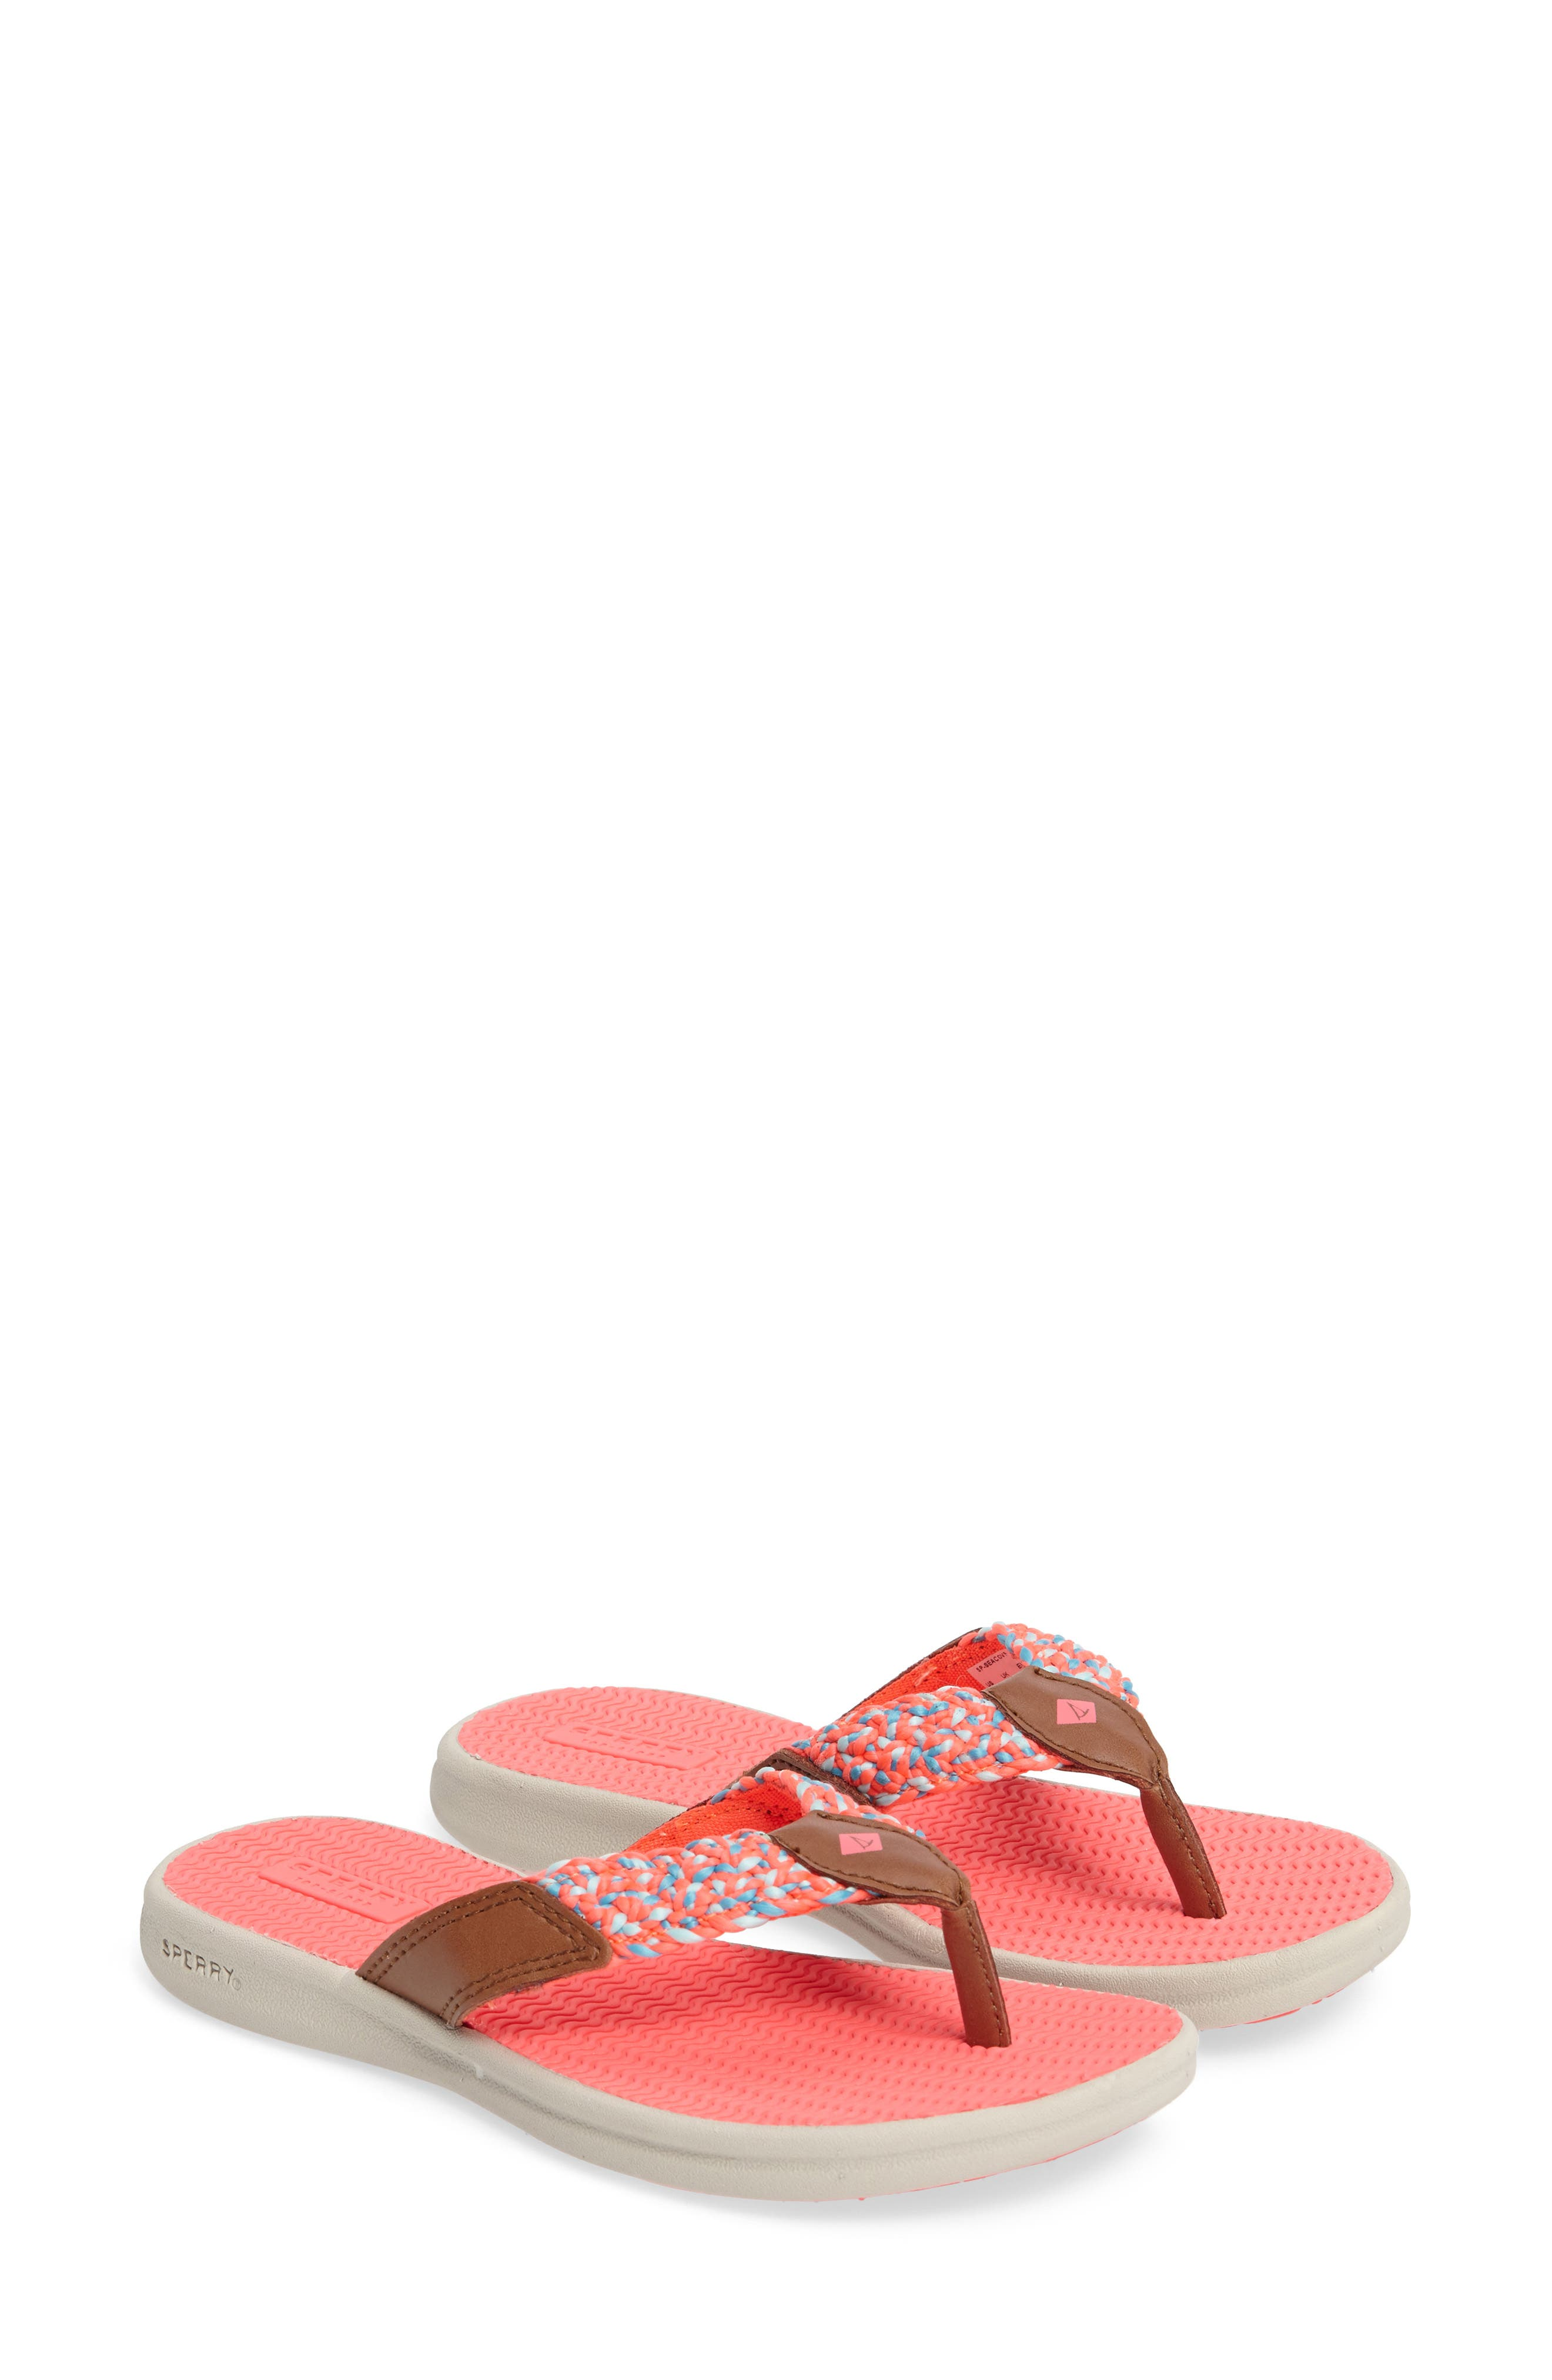 Sperry Kids Seacove Flip Flop (Toddler, Little Kid & Big Kid)